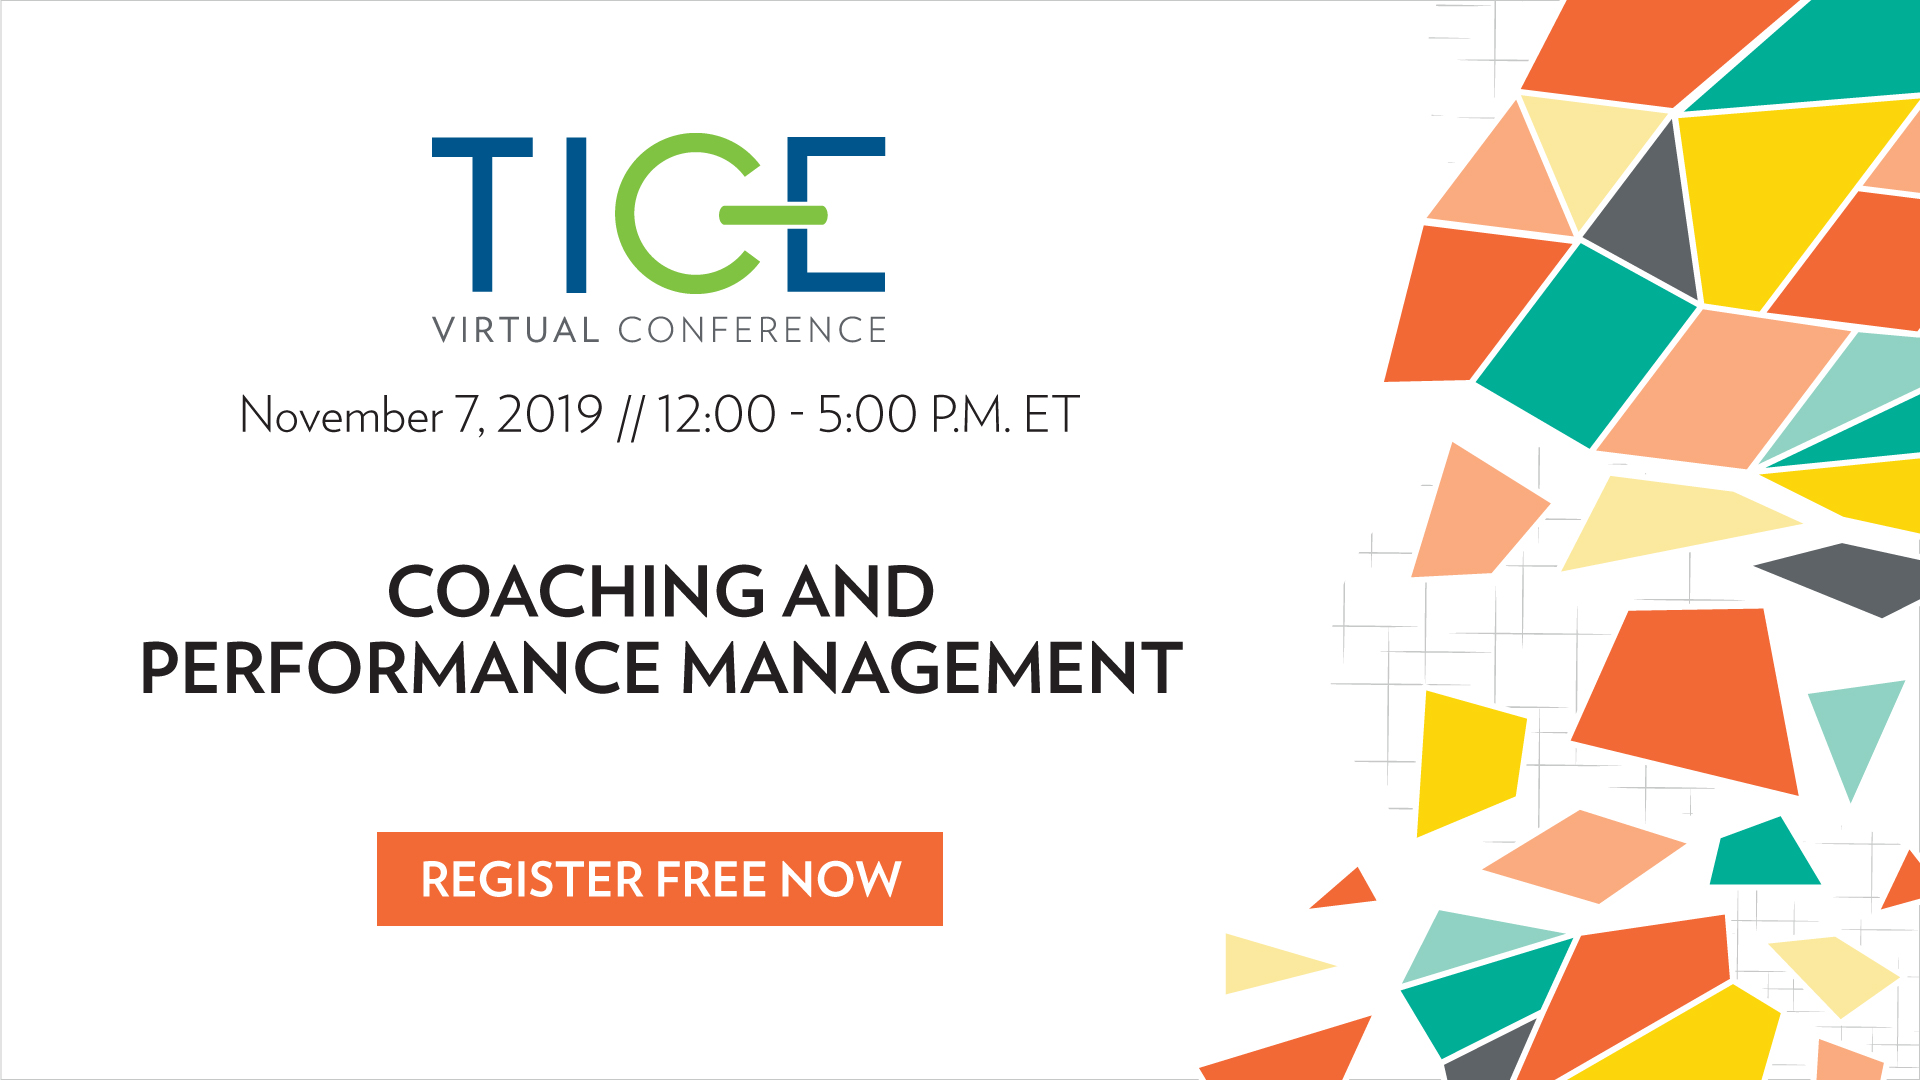 TICE Virtual Conference: Coaching and Performance Management